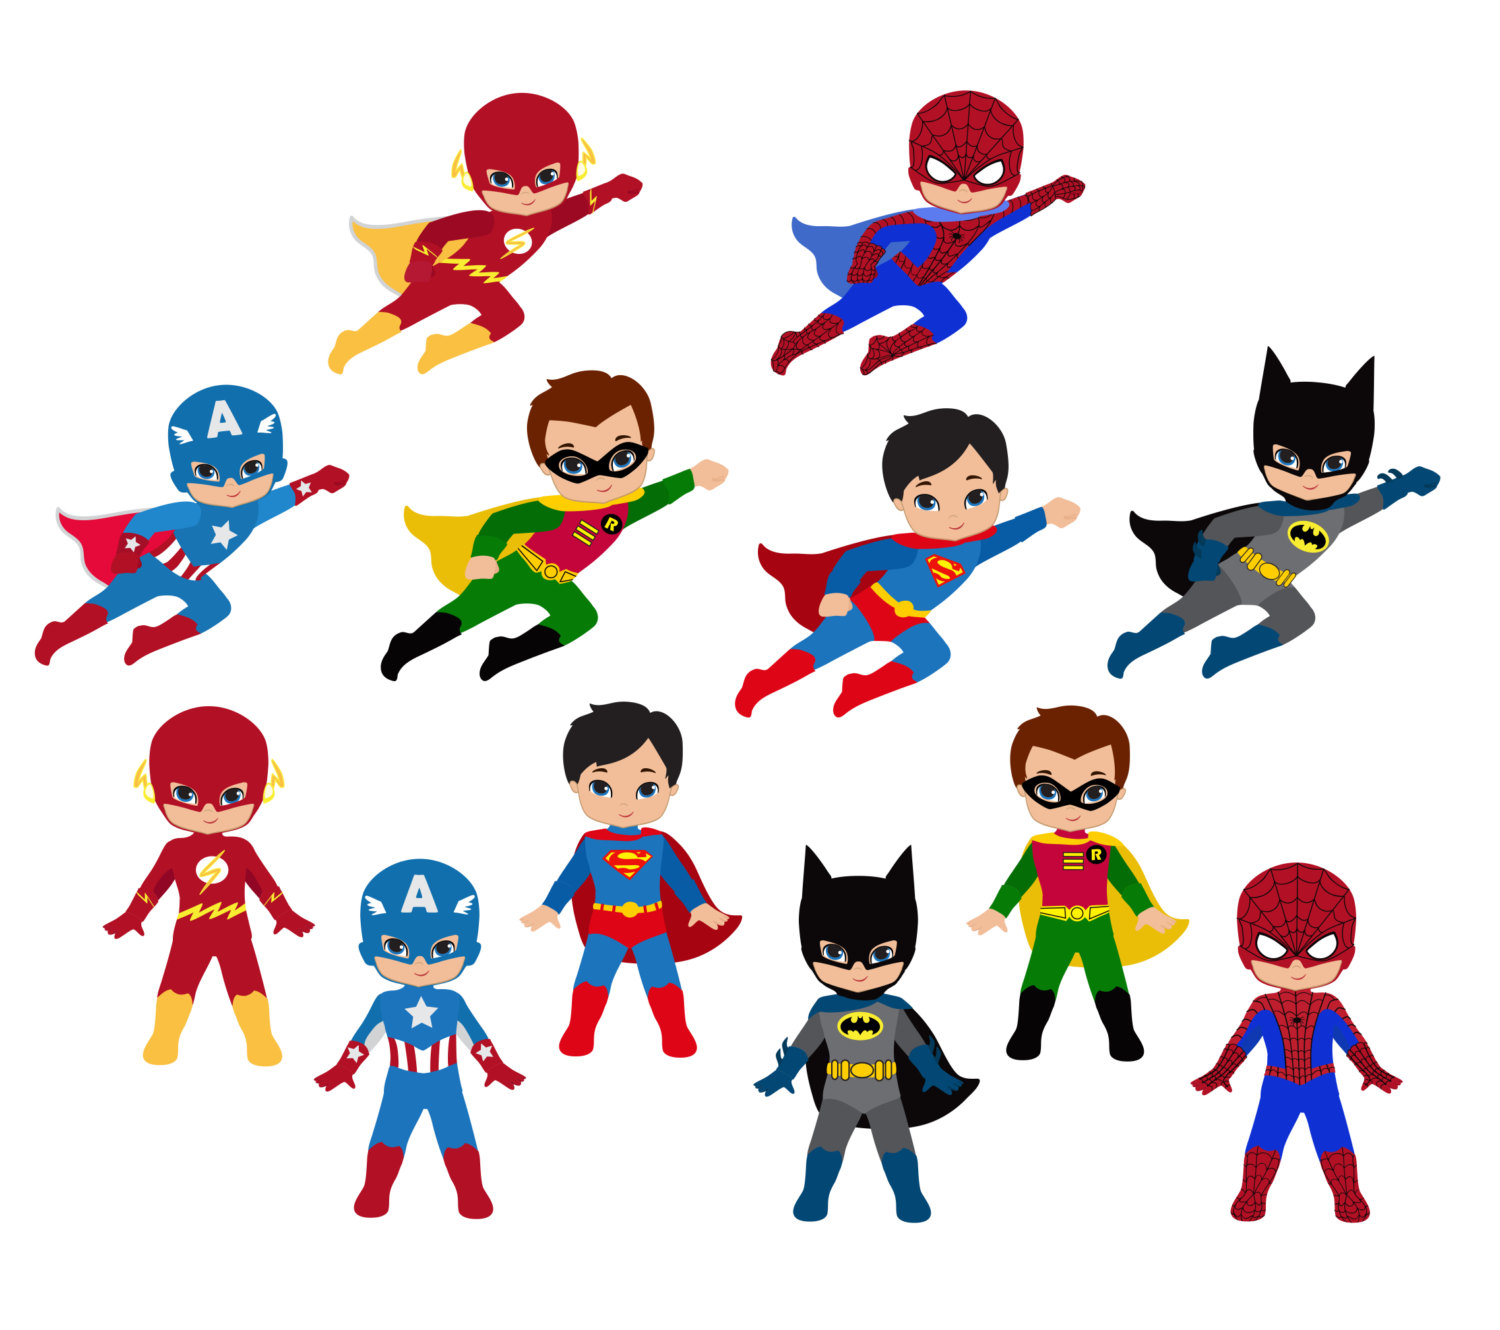 free superhero clipart | Fonts/Clipart f-free superhero clipart | Fonts/Clipart freebies | Pinterest | Teaching, Clip art and Boys-10